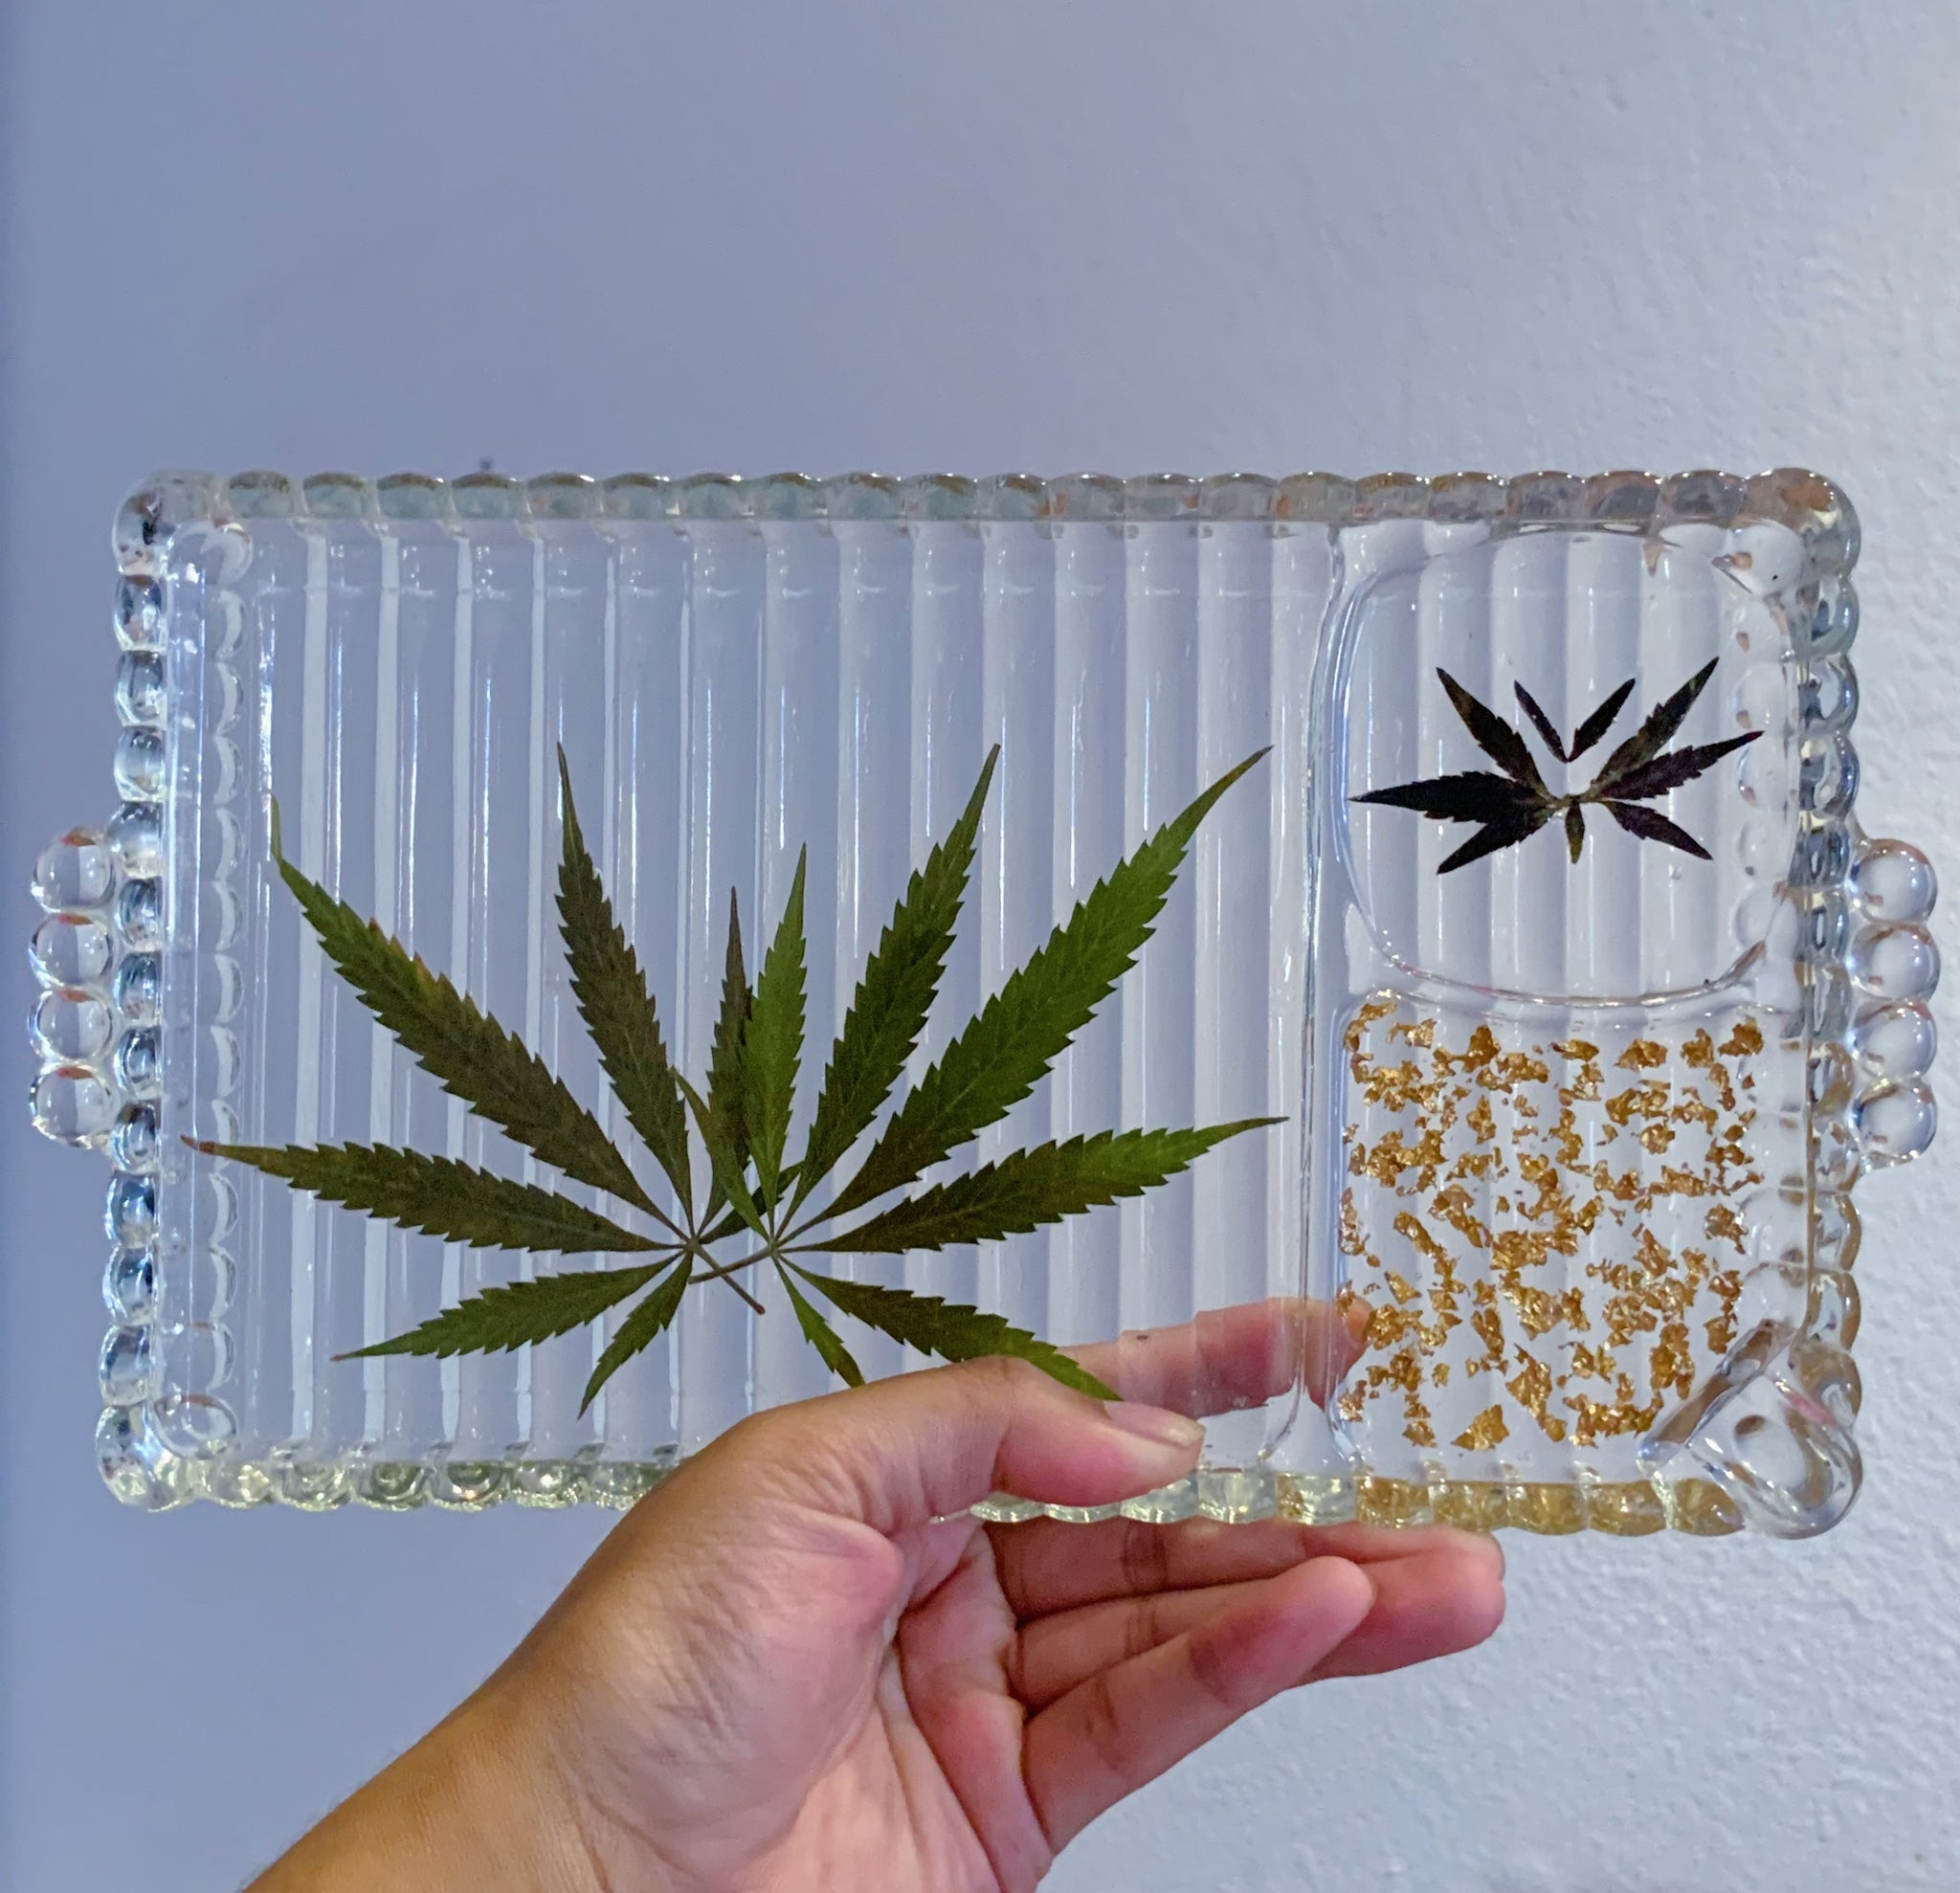 Gold Flake and Marijuana Leaf Vintage Glass Rolling Tray